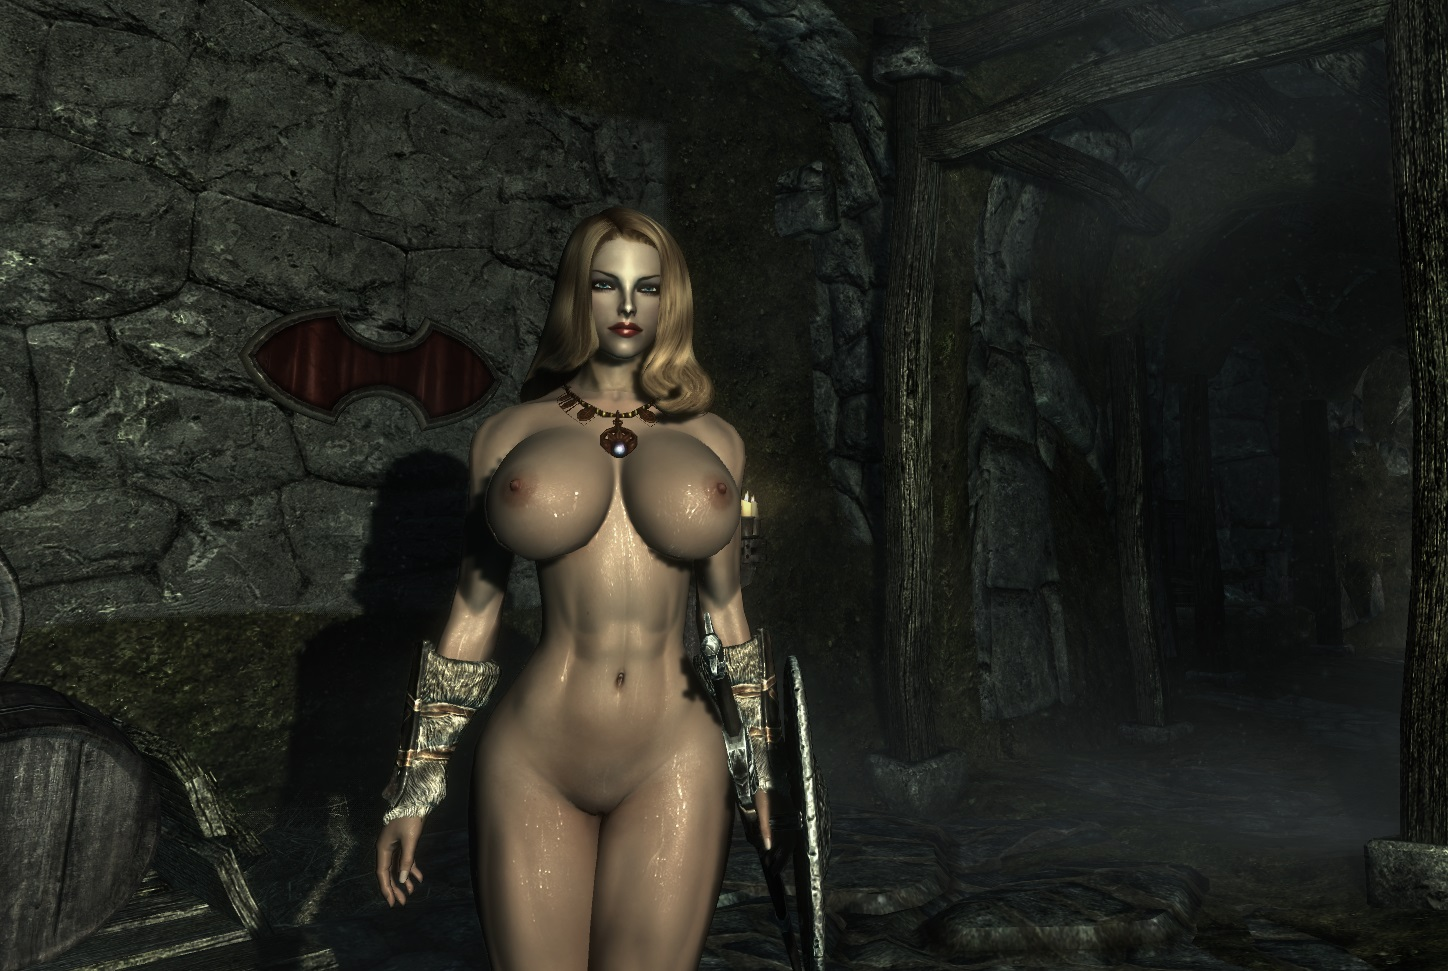 skyrim rule 34